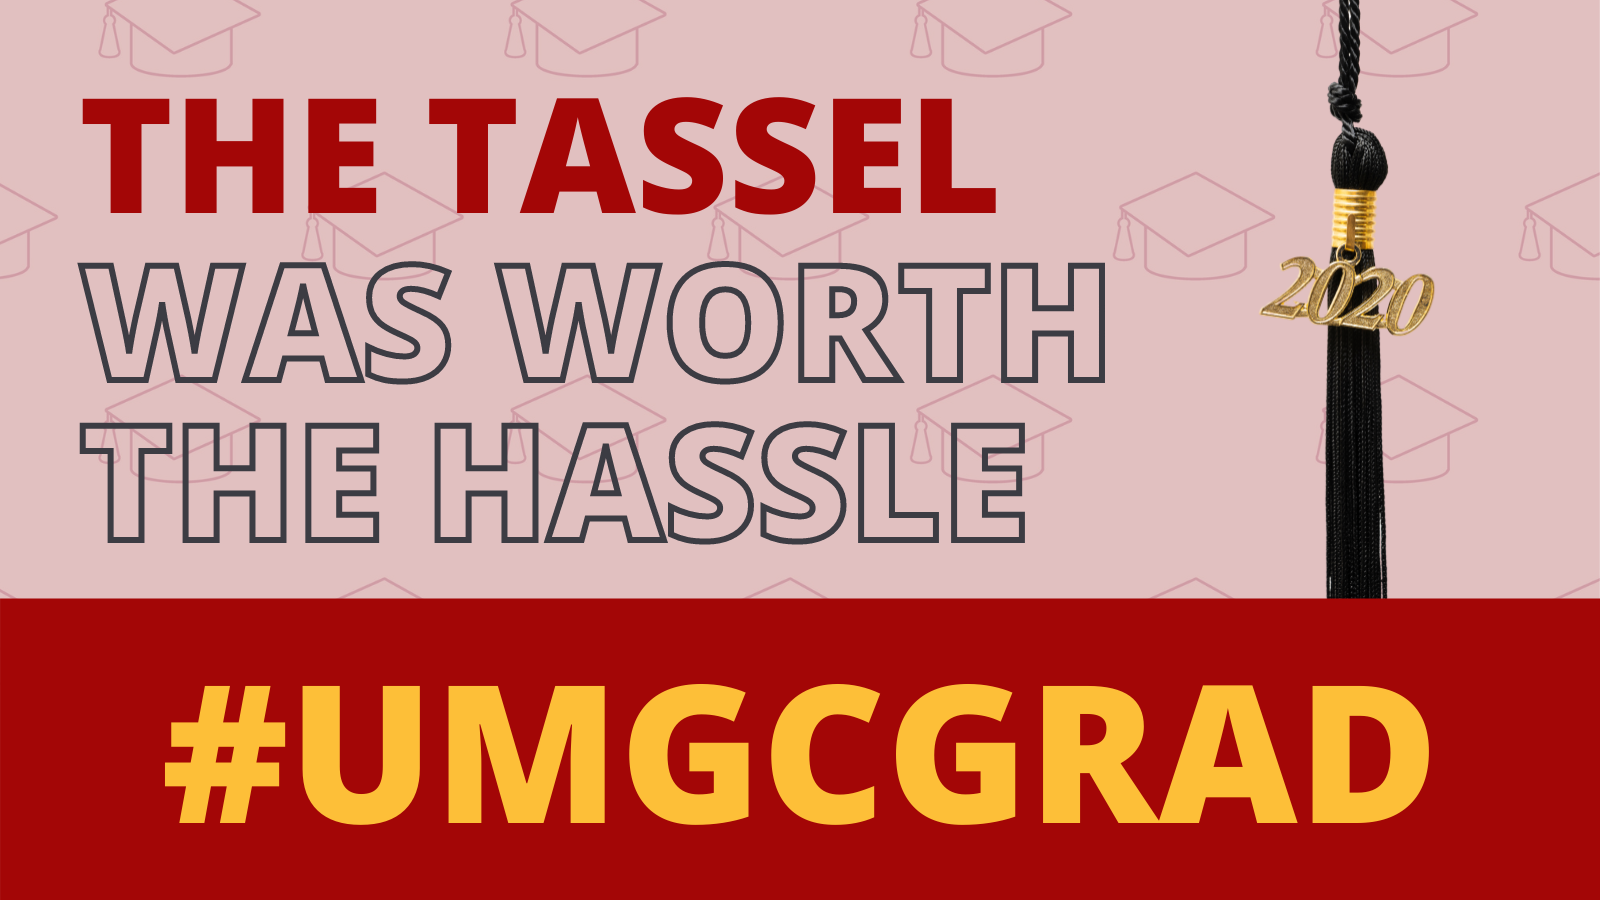 The tassel was worth the hassle #UMGCGRAD: Social media toolkit image 4 for Twitter feed posts